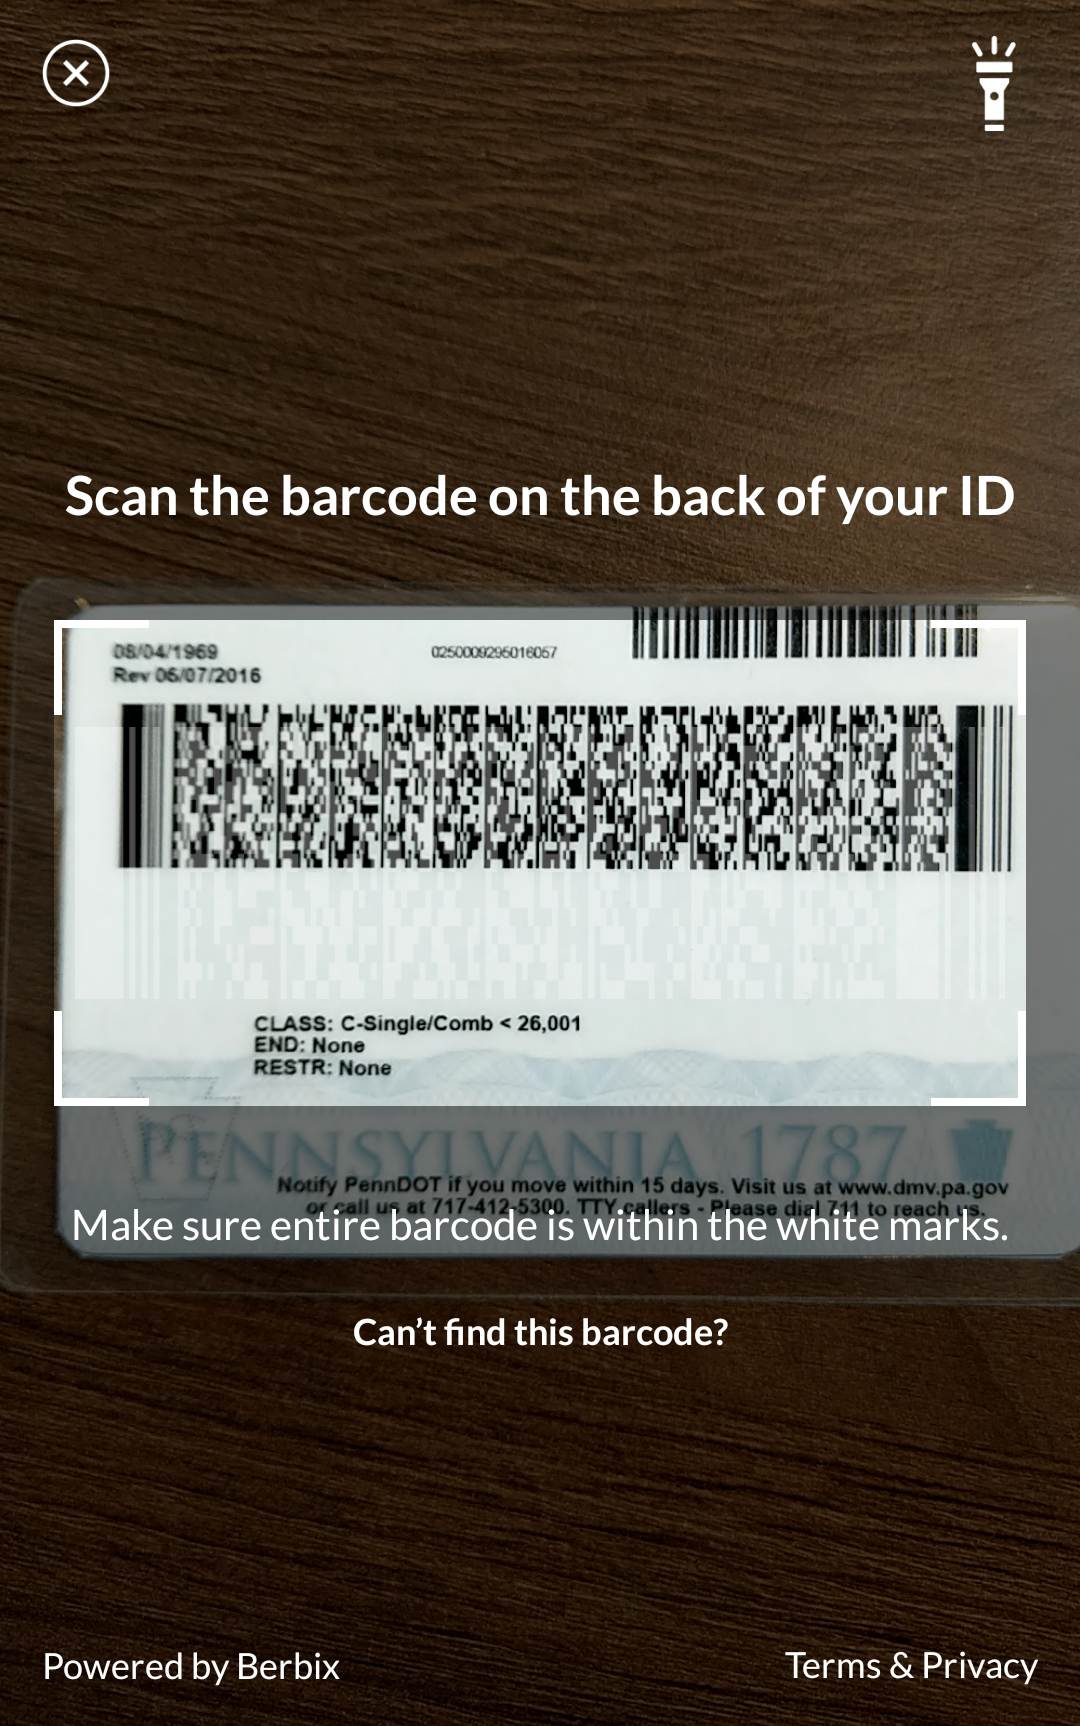 Native mobile barcode scan experience